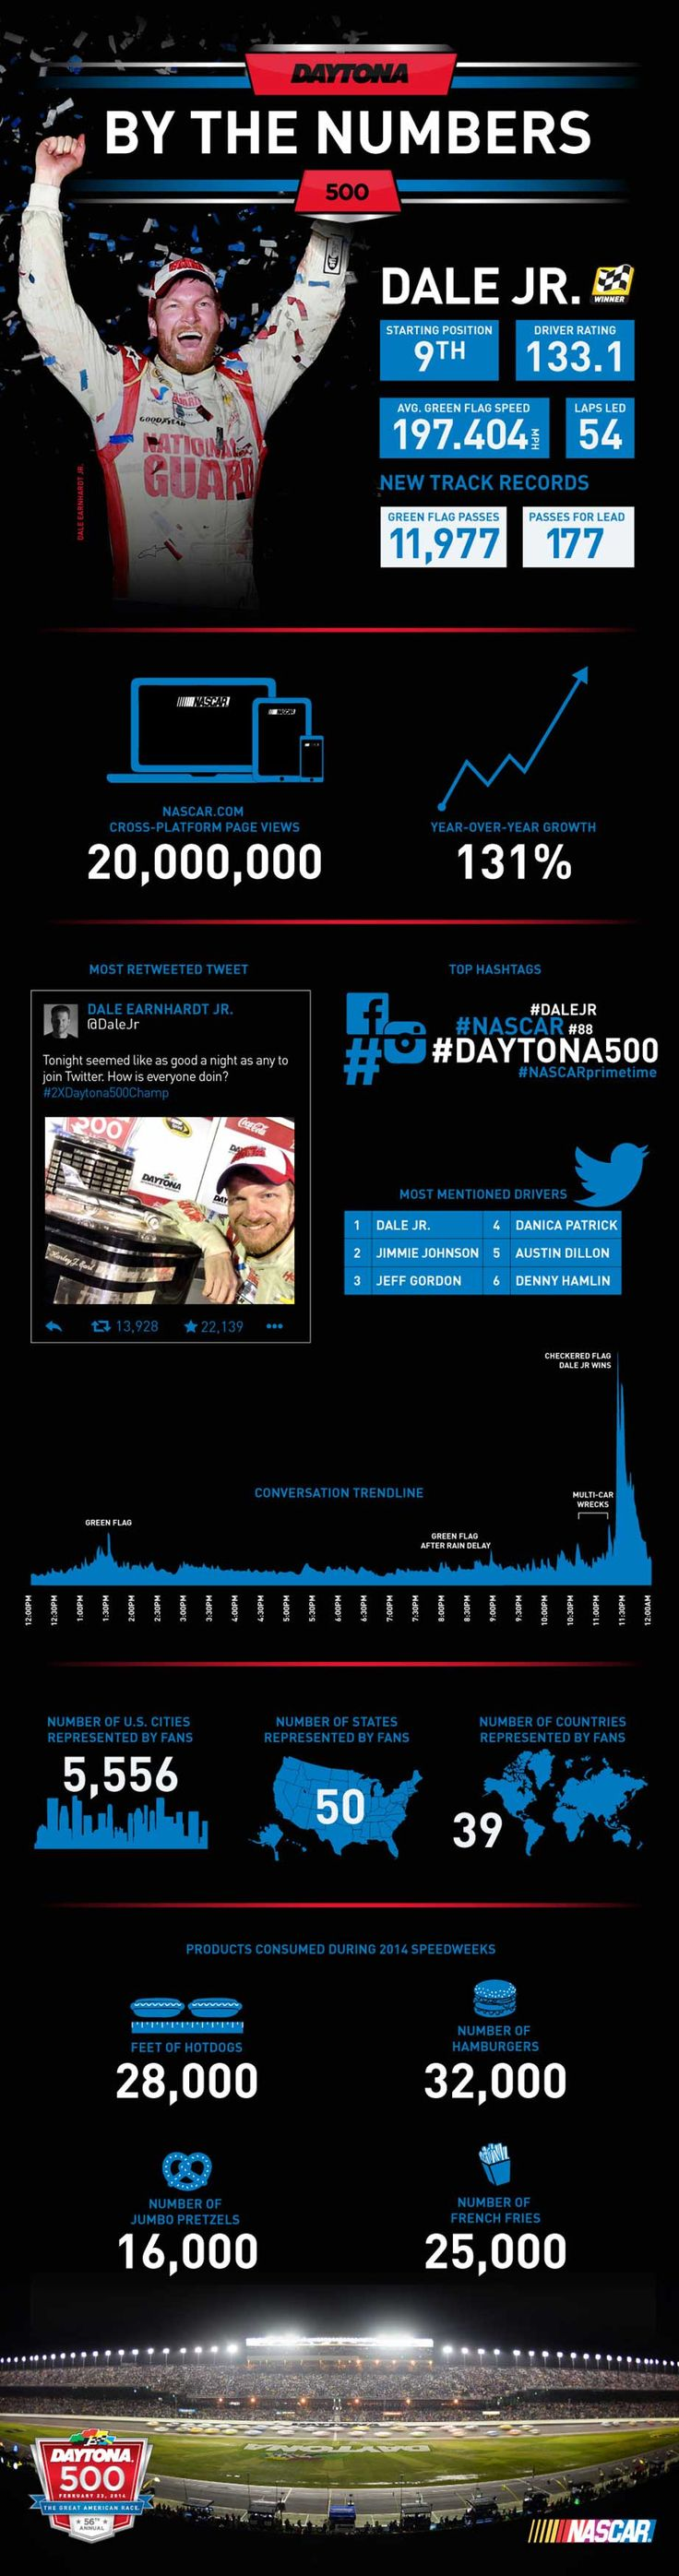 Get the top social and competition statistics and more from the Great American Race